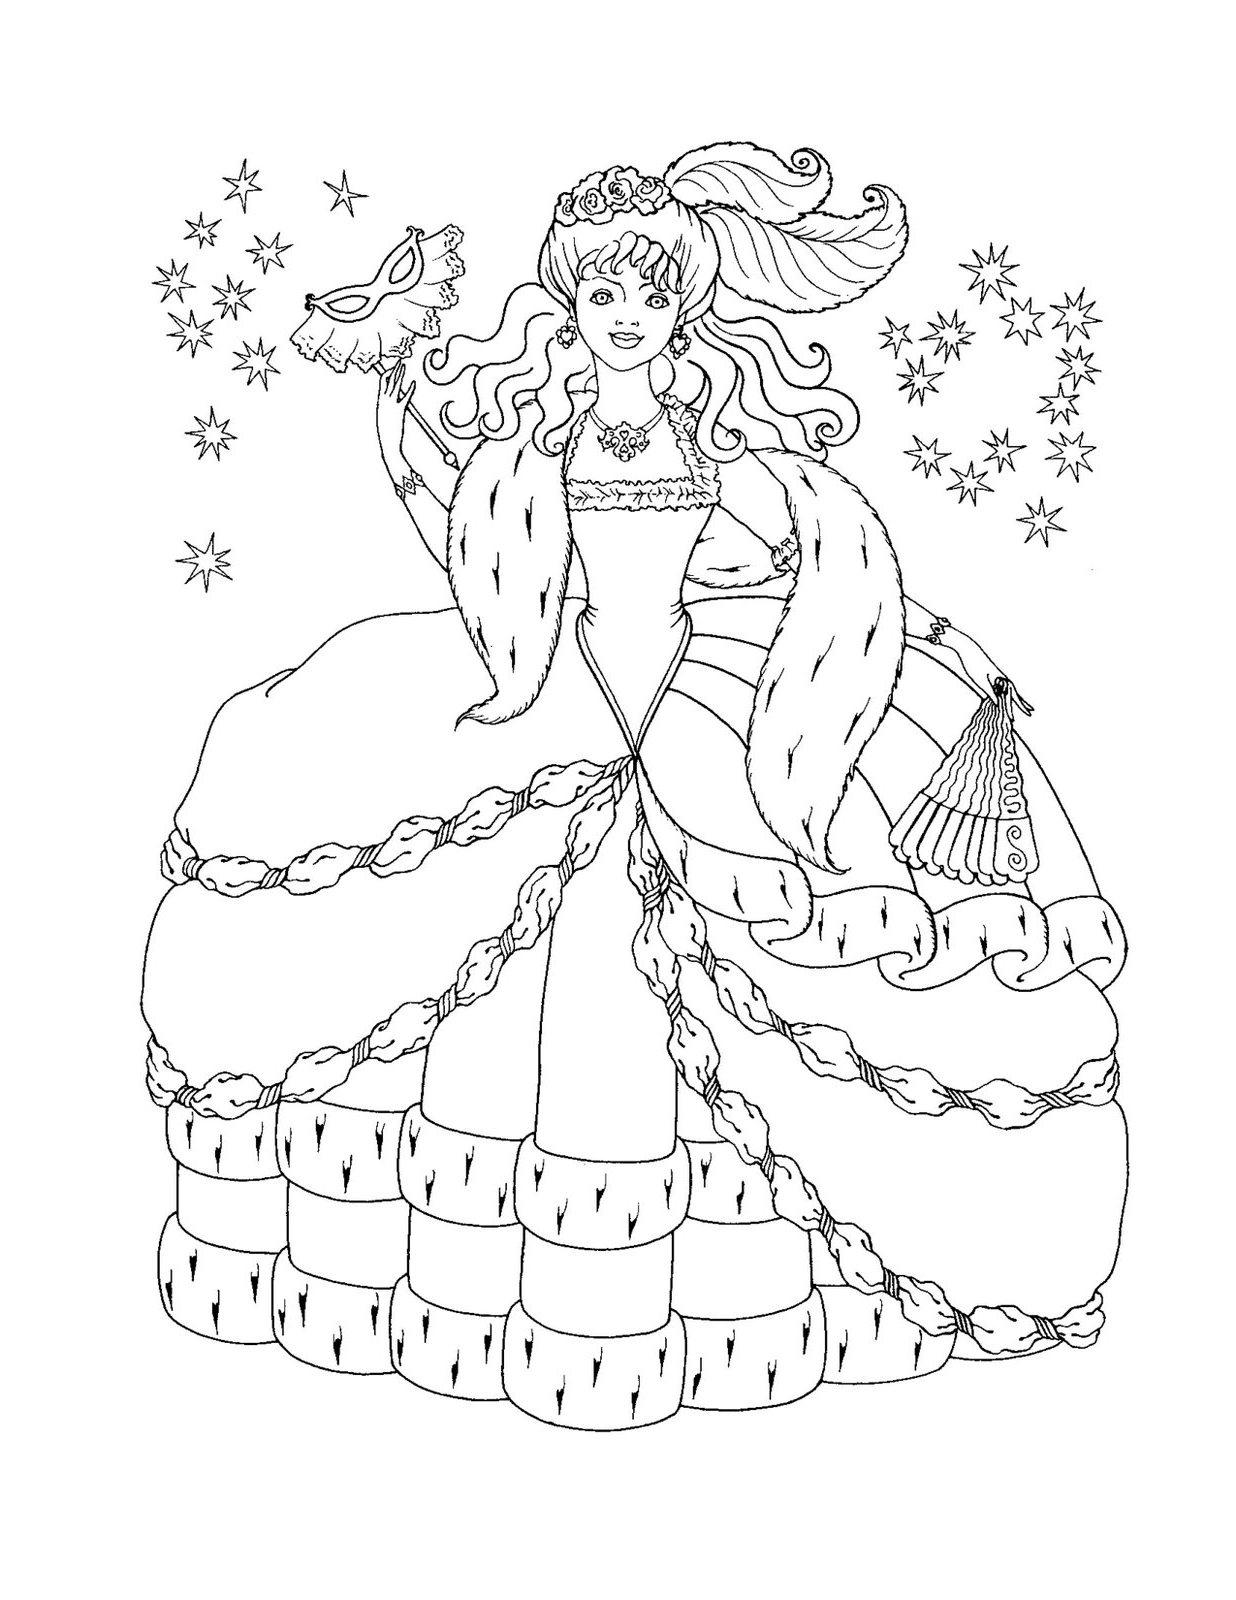 Pr princess coloring sheet - Disney Princess Printables Coloring Pages